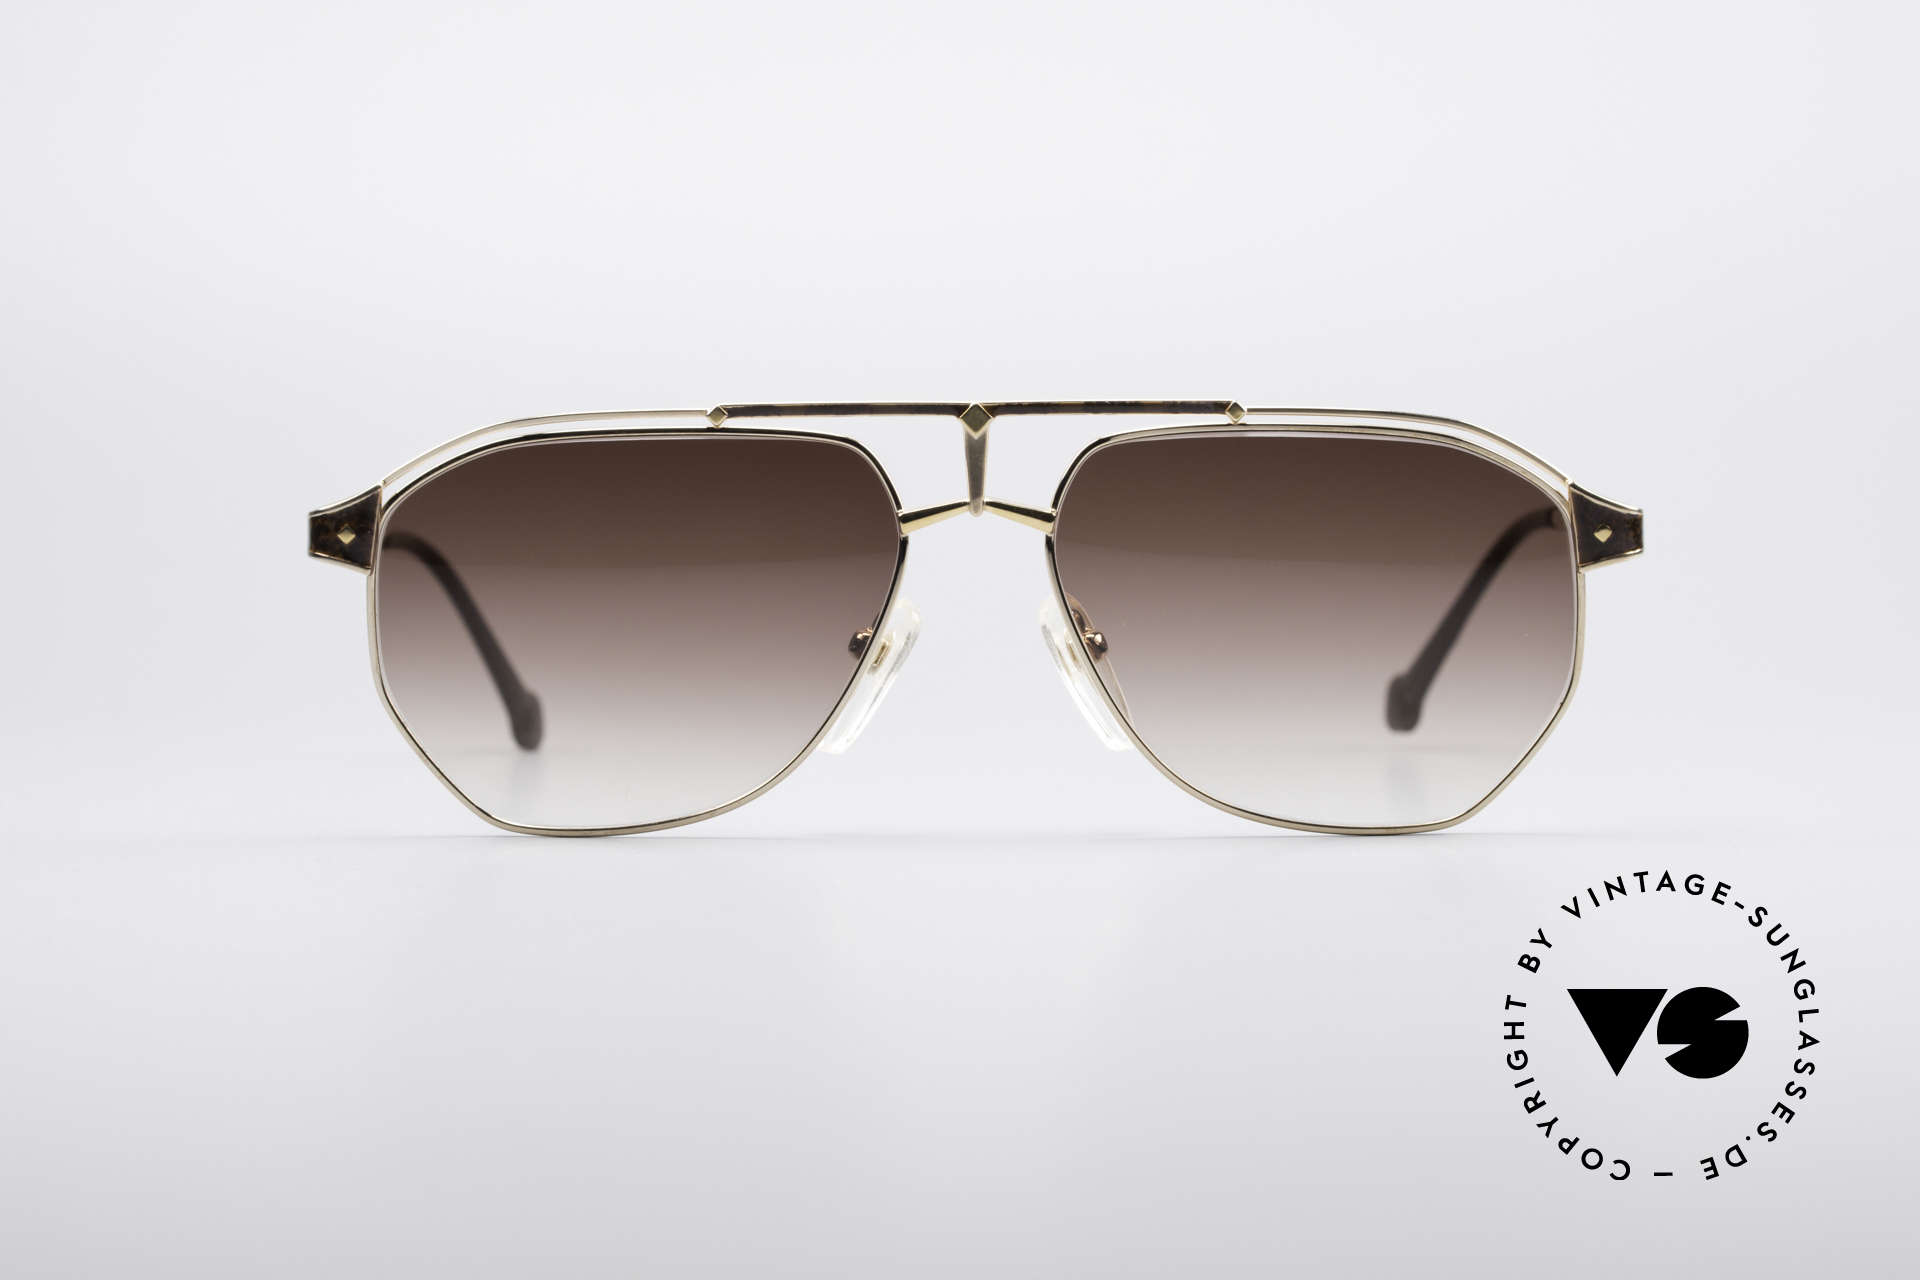 MCM München 6 XL 90's Luxury Shades, modified aviator design (150mm frame width) = XXL, Made for Men